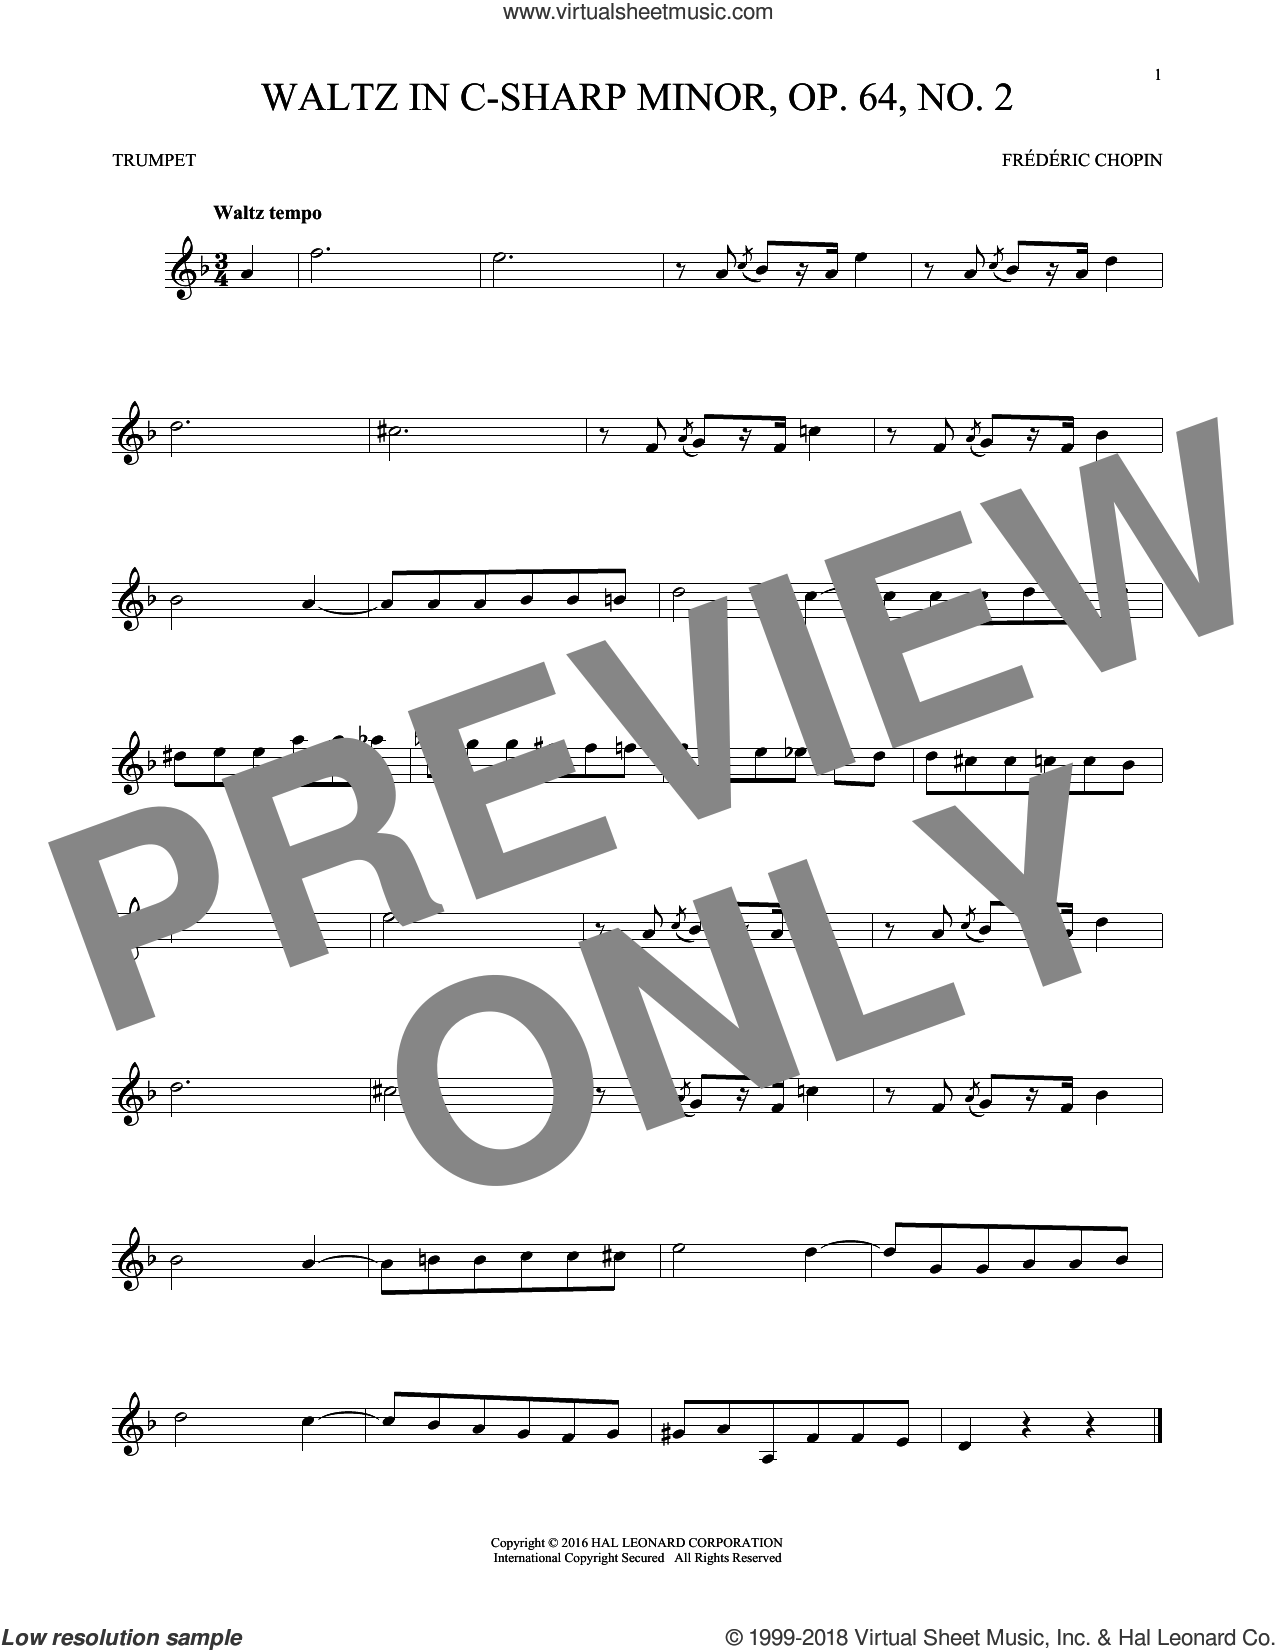 Waltz In C-Sharp Minor, Op. 64, No. 2 sheet music for trumpet solo by Frederic Chopin, classical score, intermediate skill level